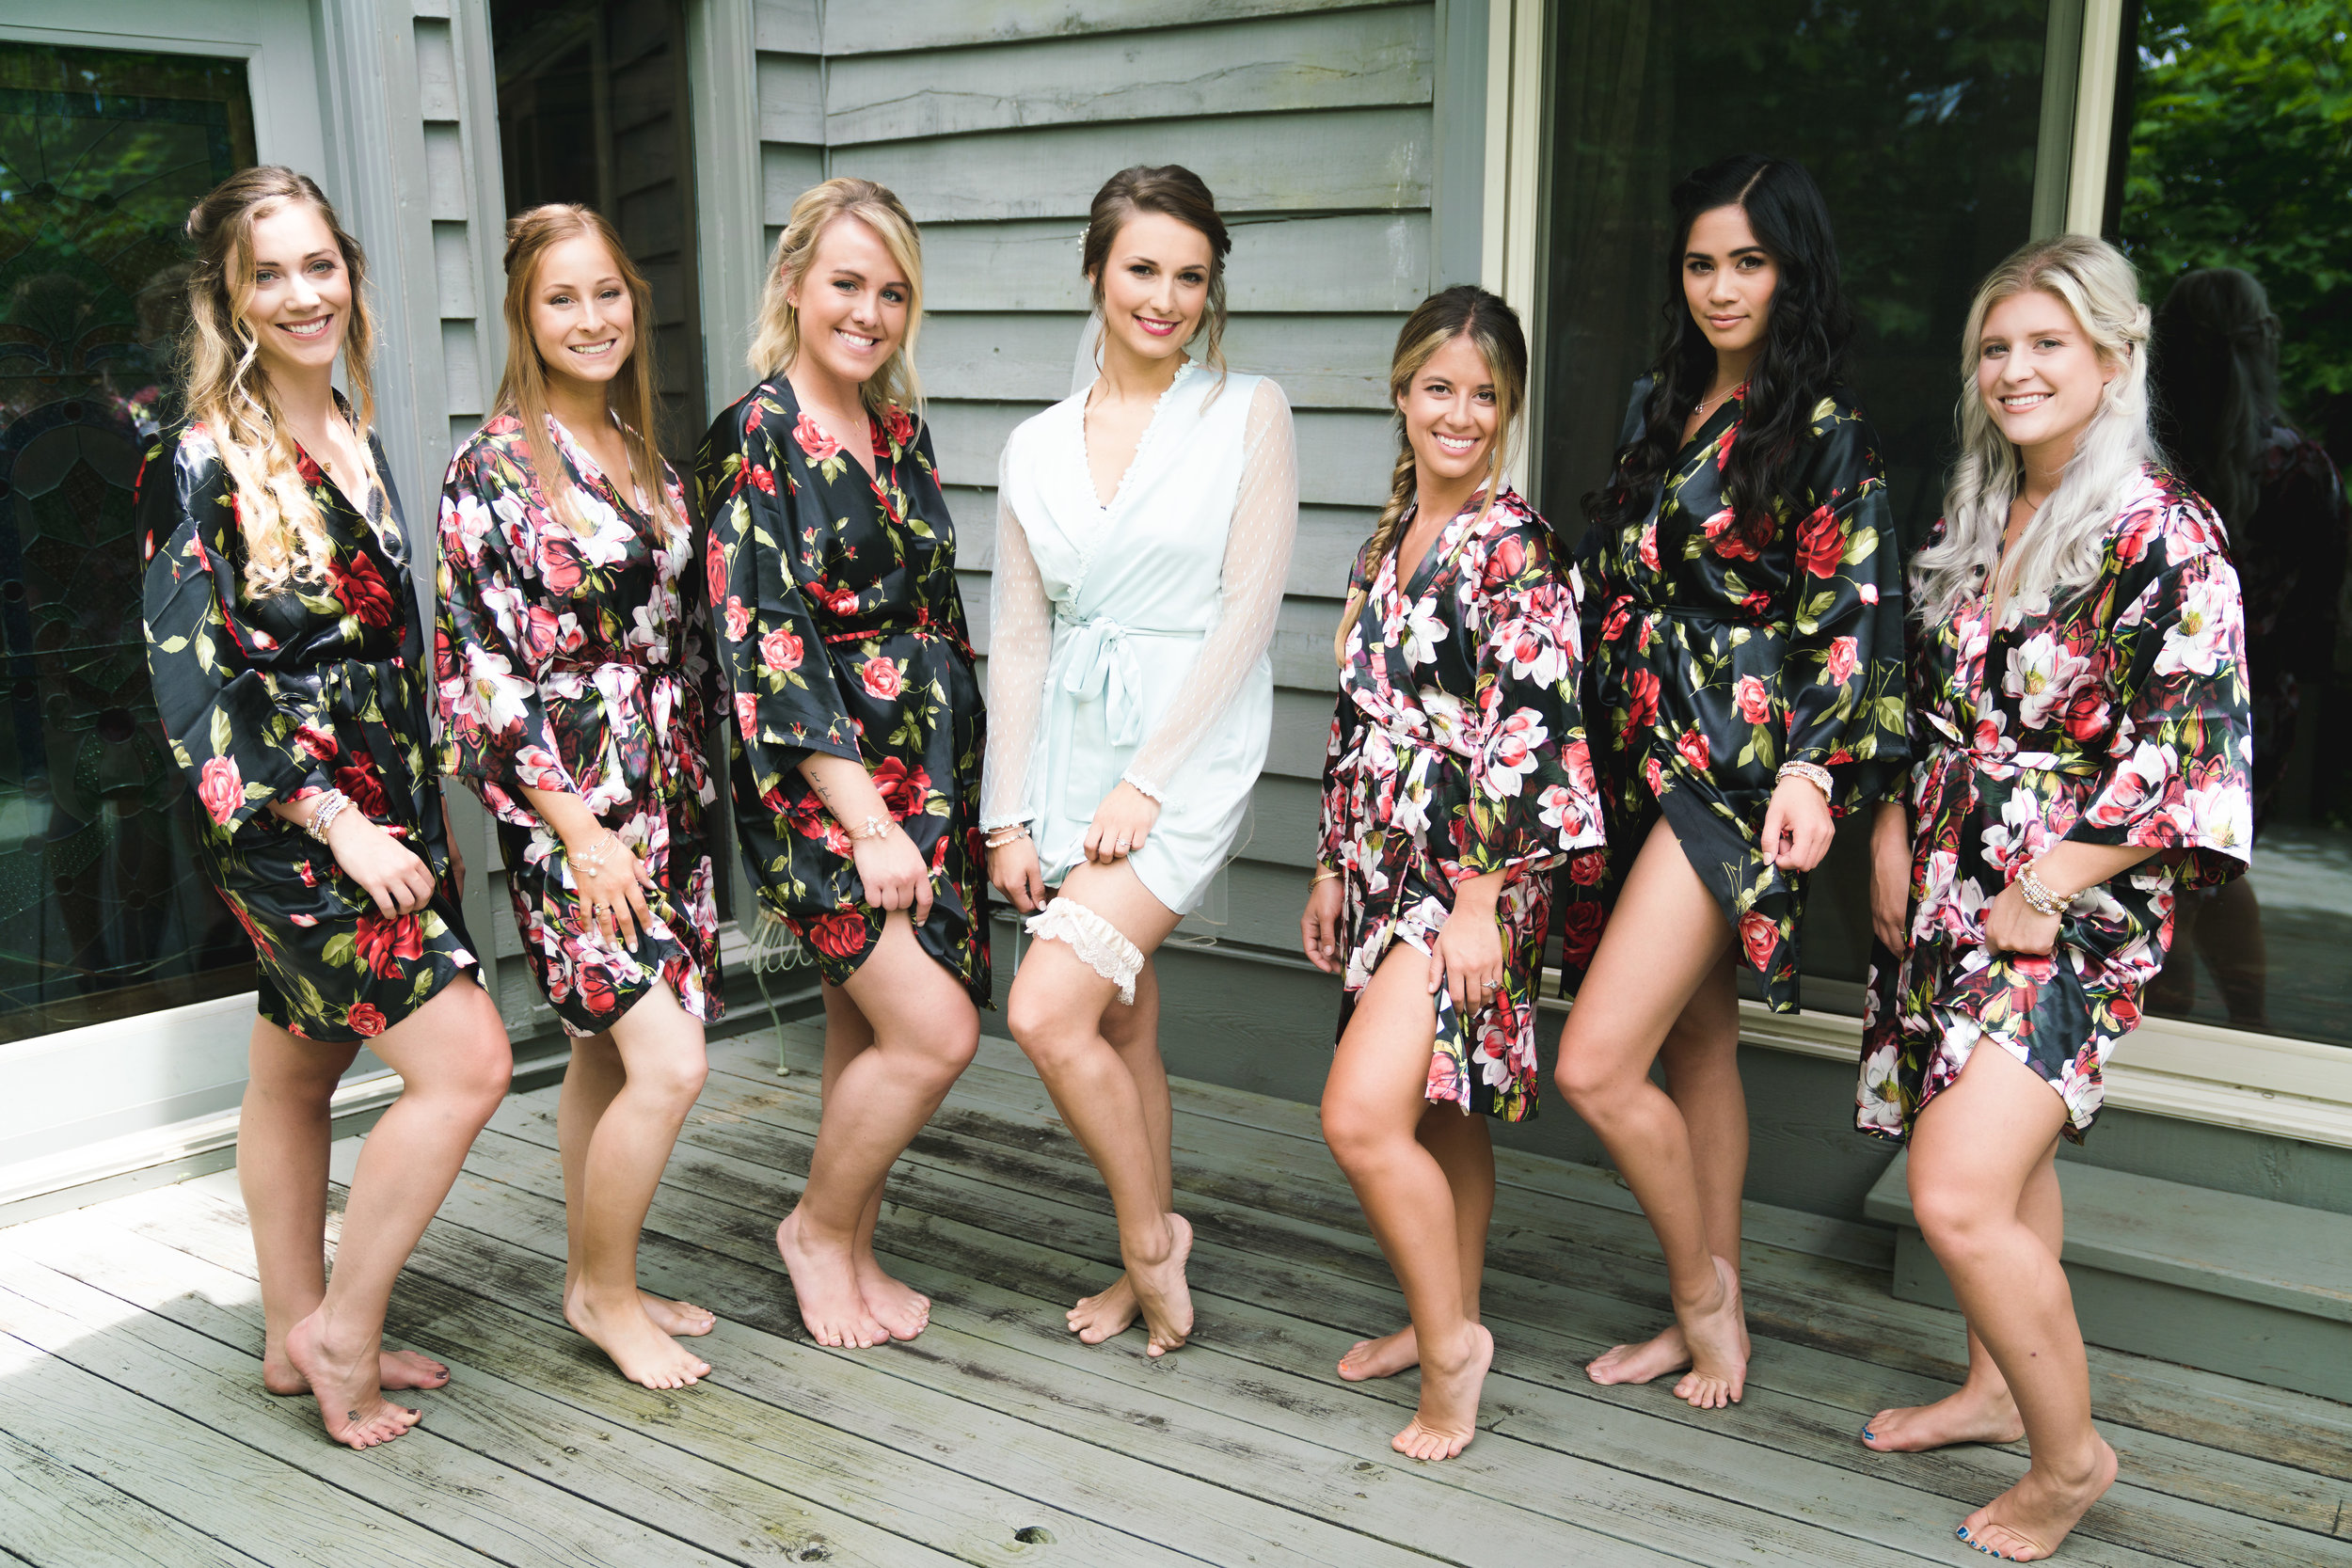 The bridal party - Viewpoint at Buckhorn Creek | Greenville, SC